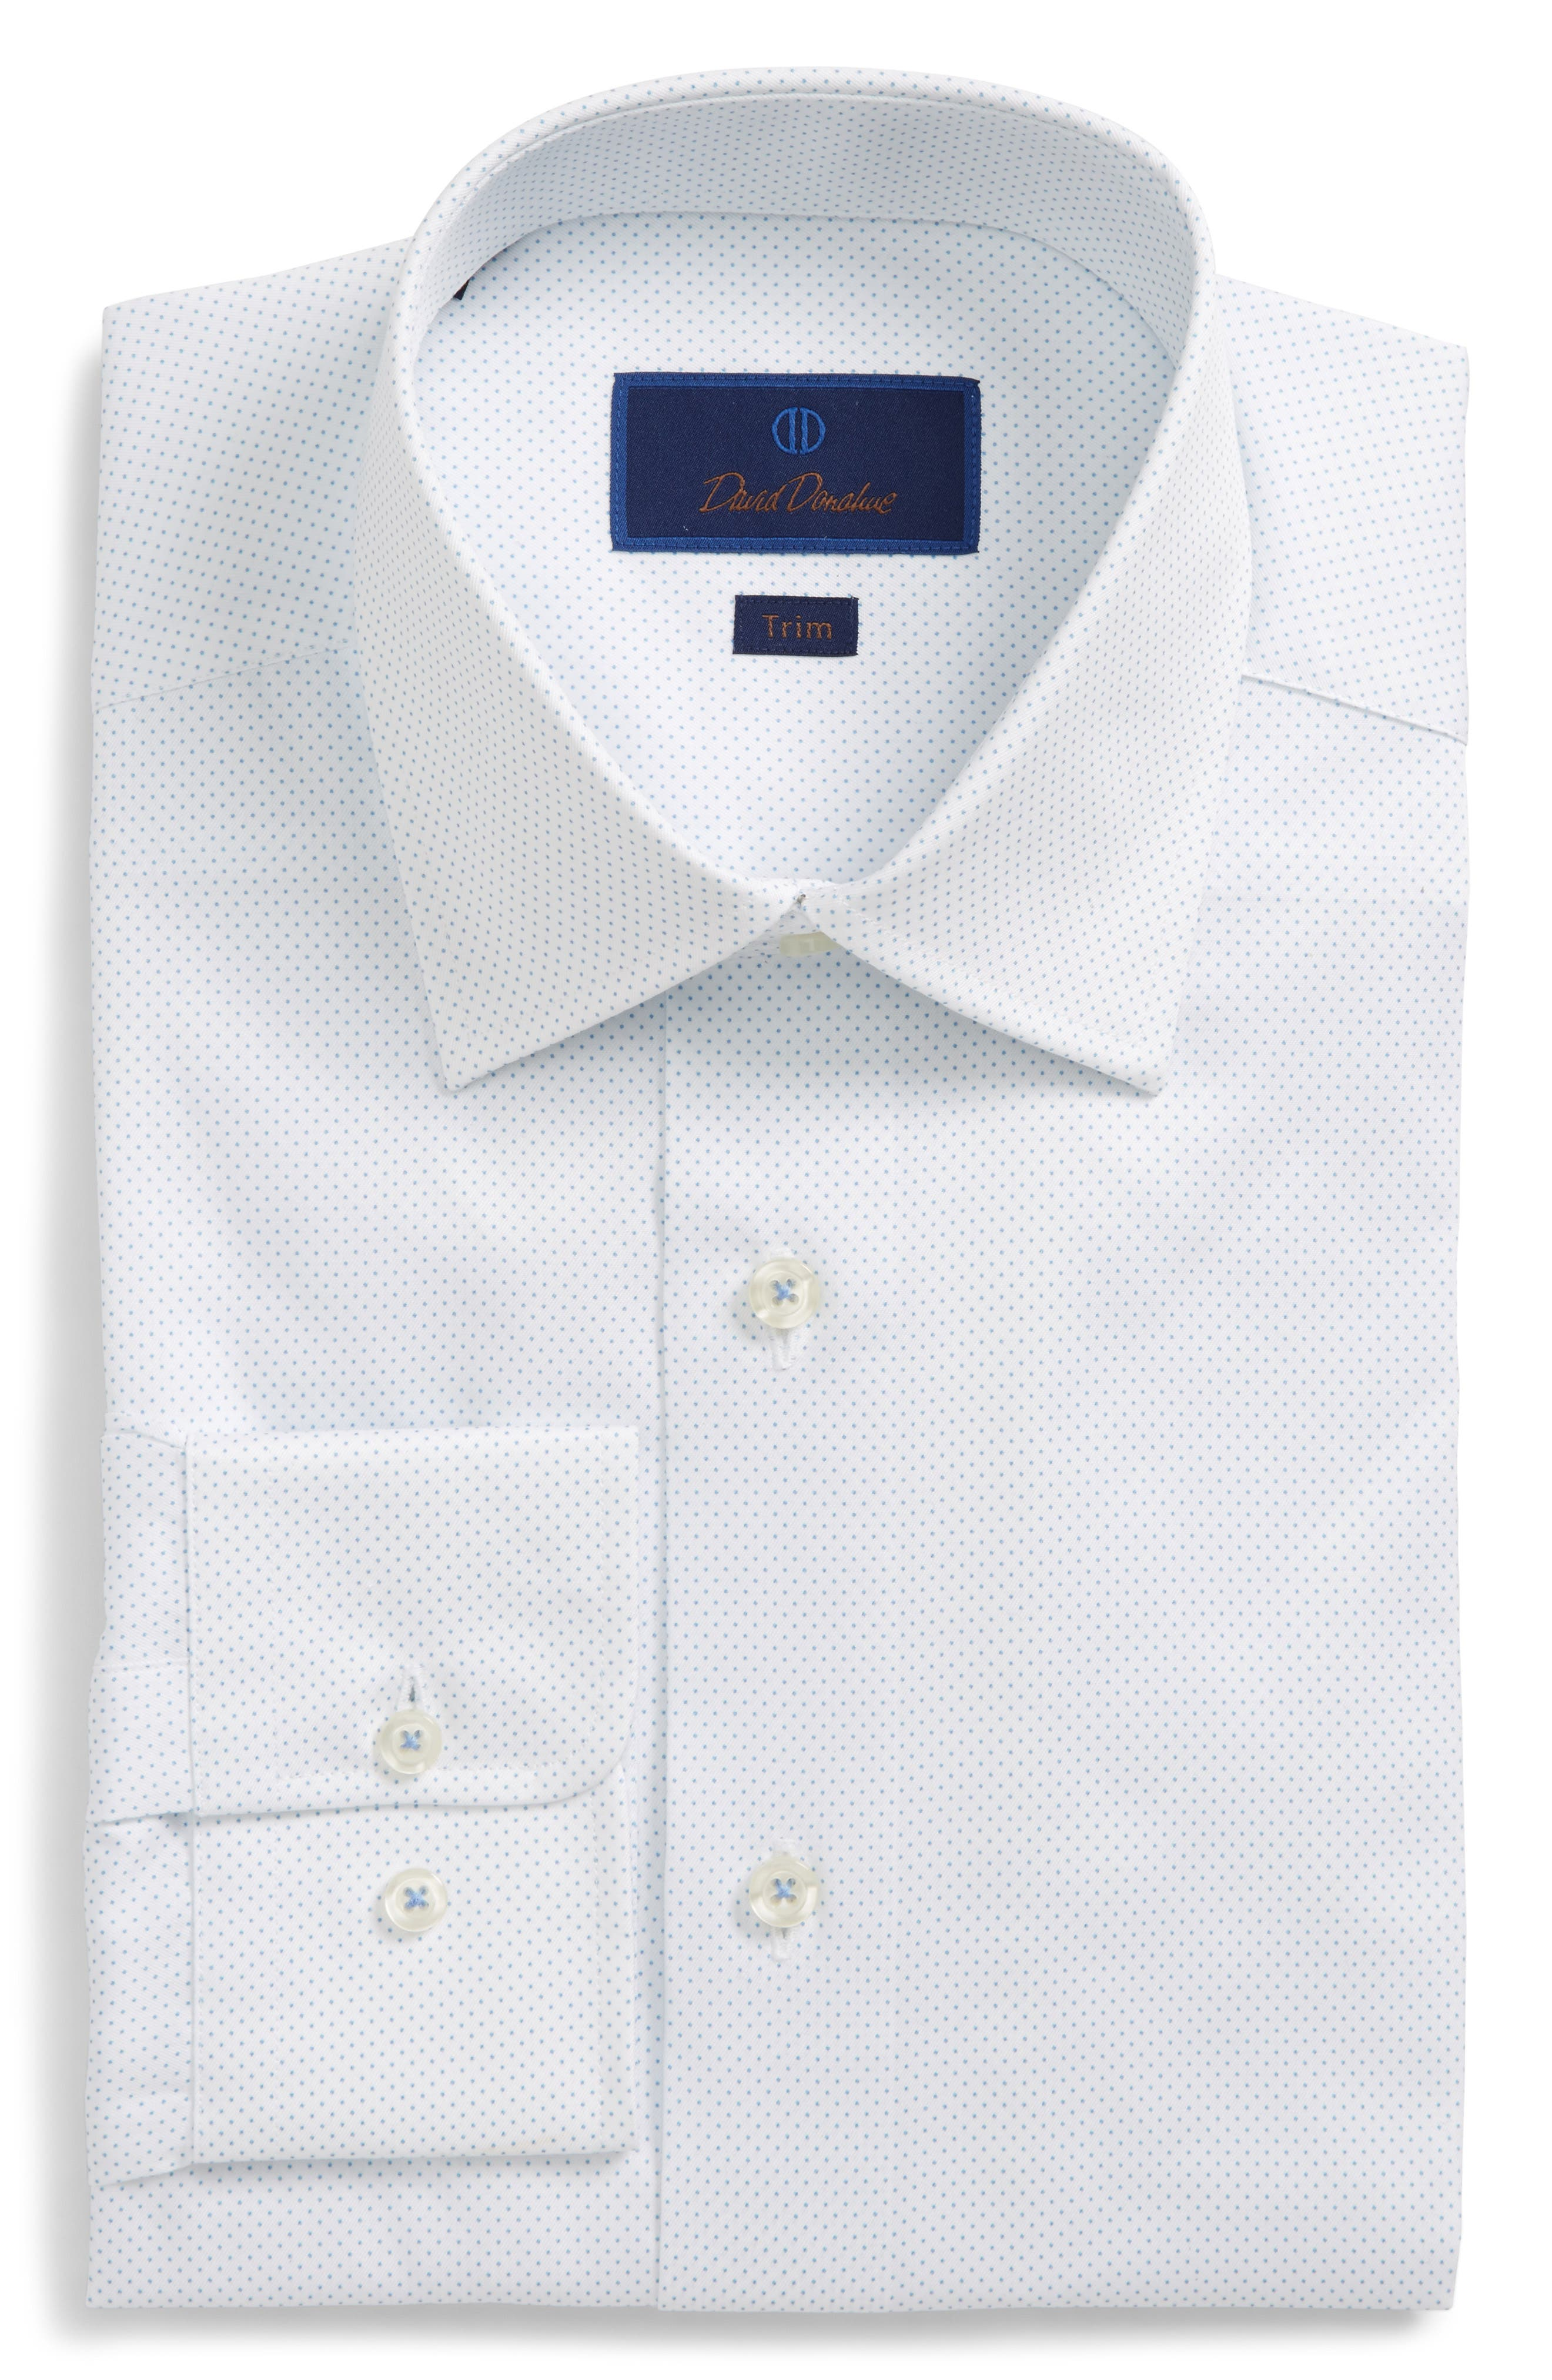 Trim Fit Dot Dress Shirt,                             Main thumbnail 1, color,                             White/ Blue